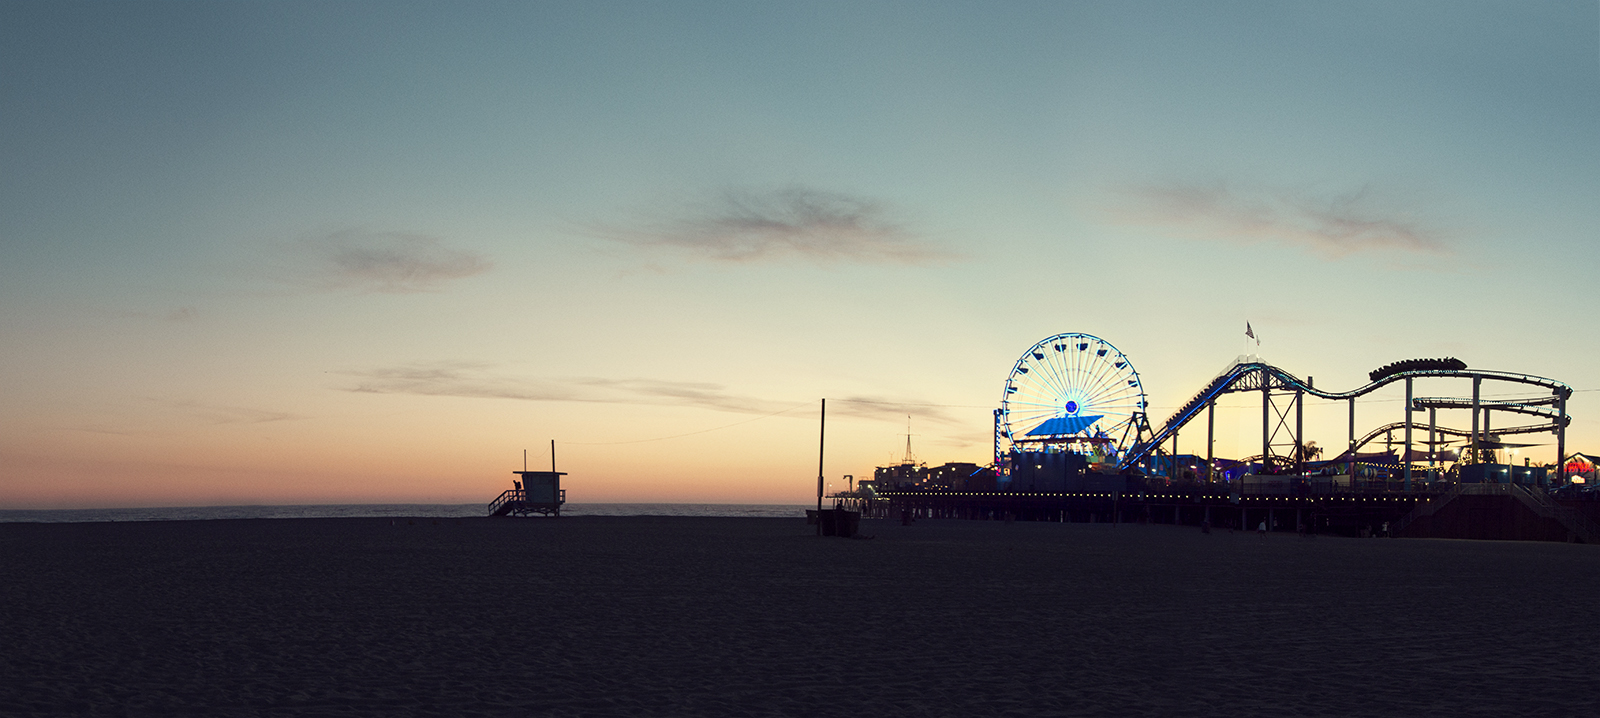 Santa Monica_California.jpg